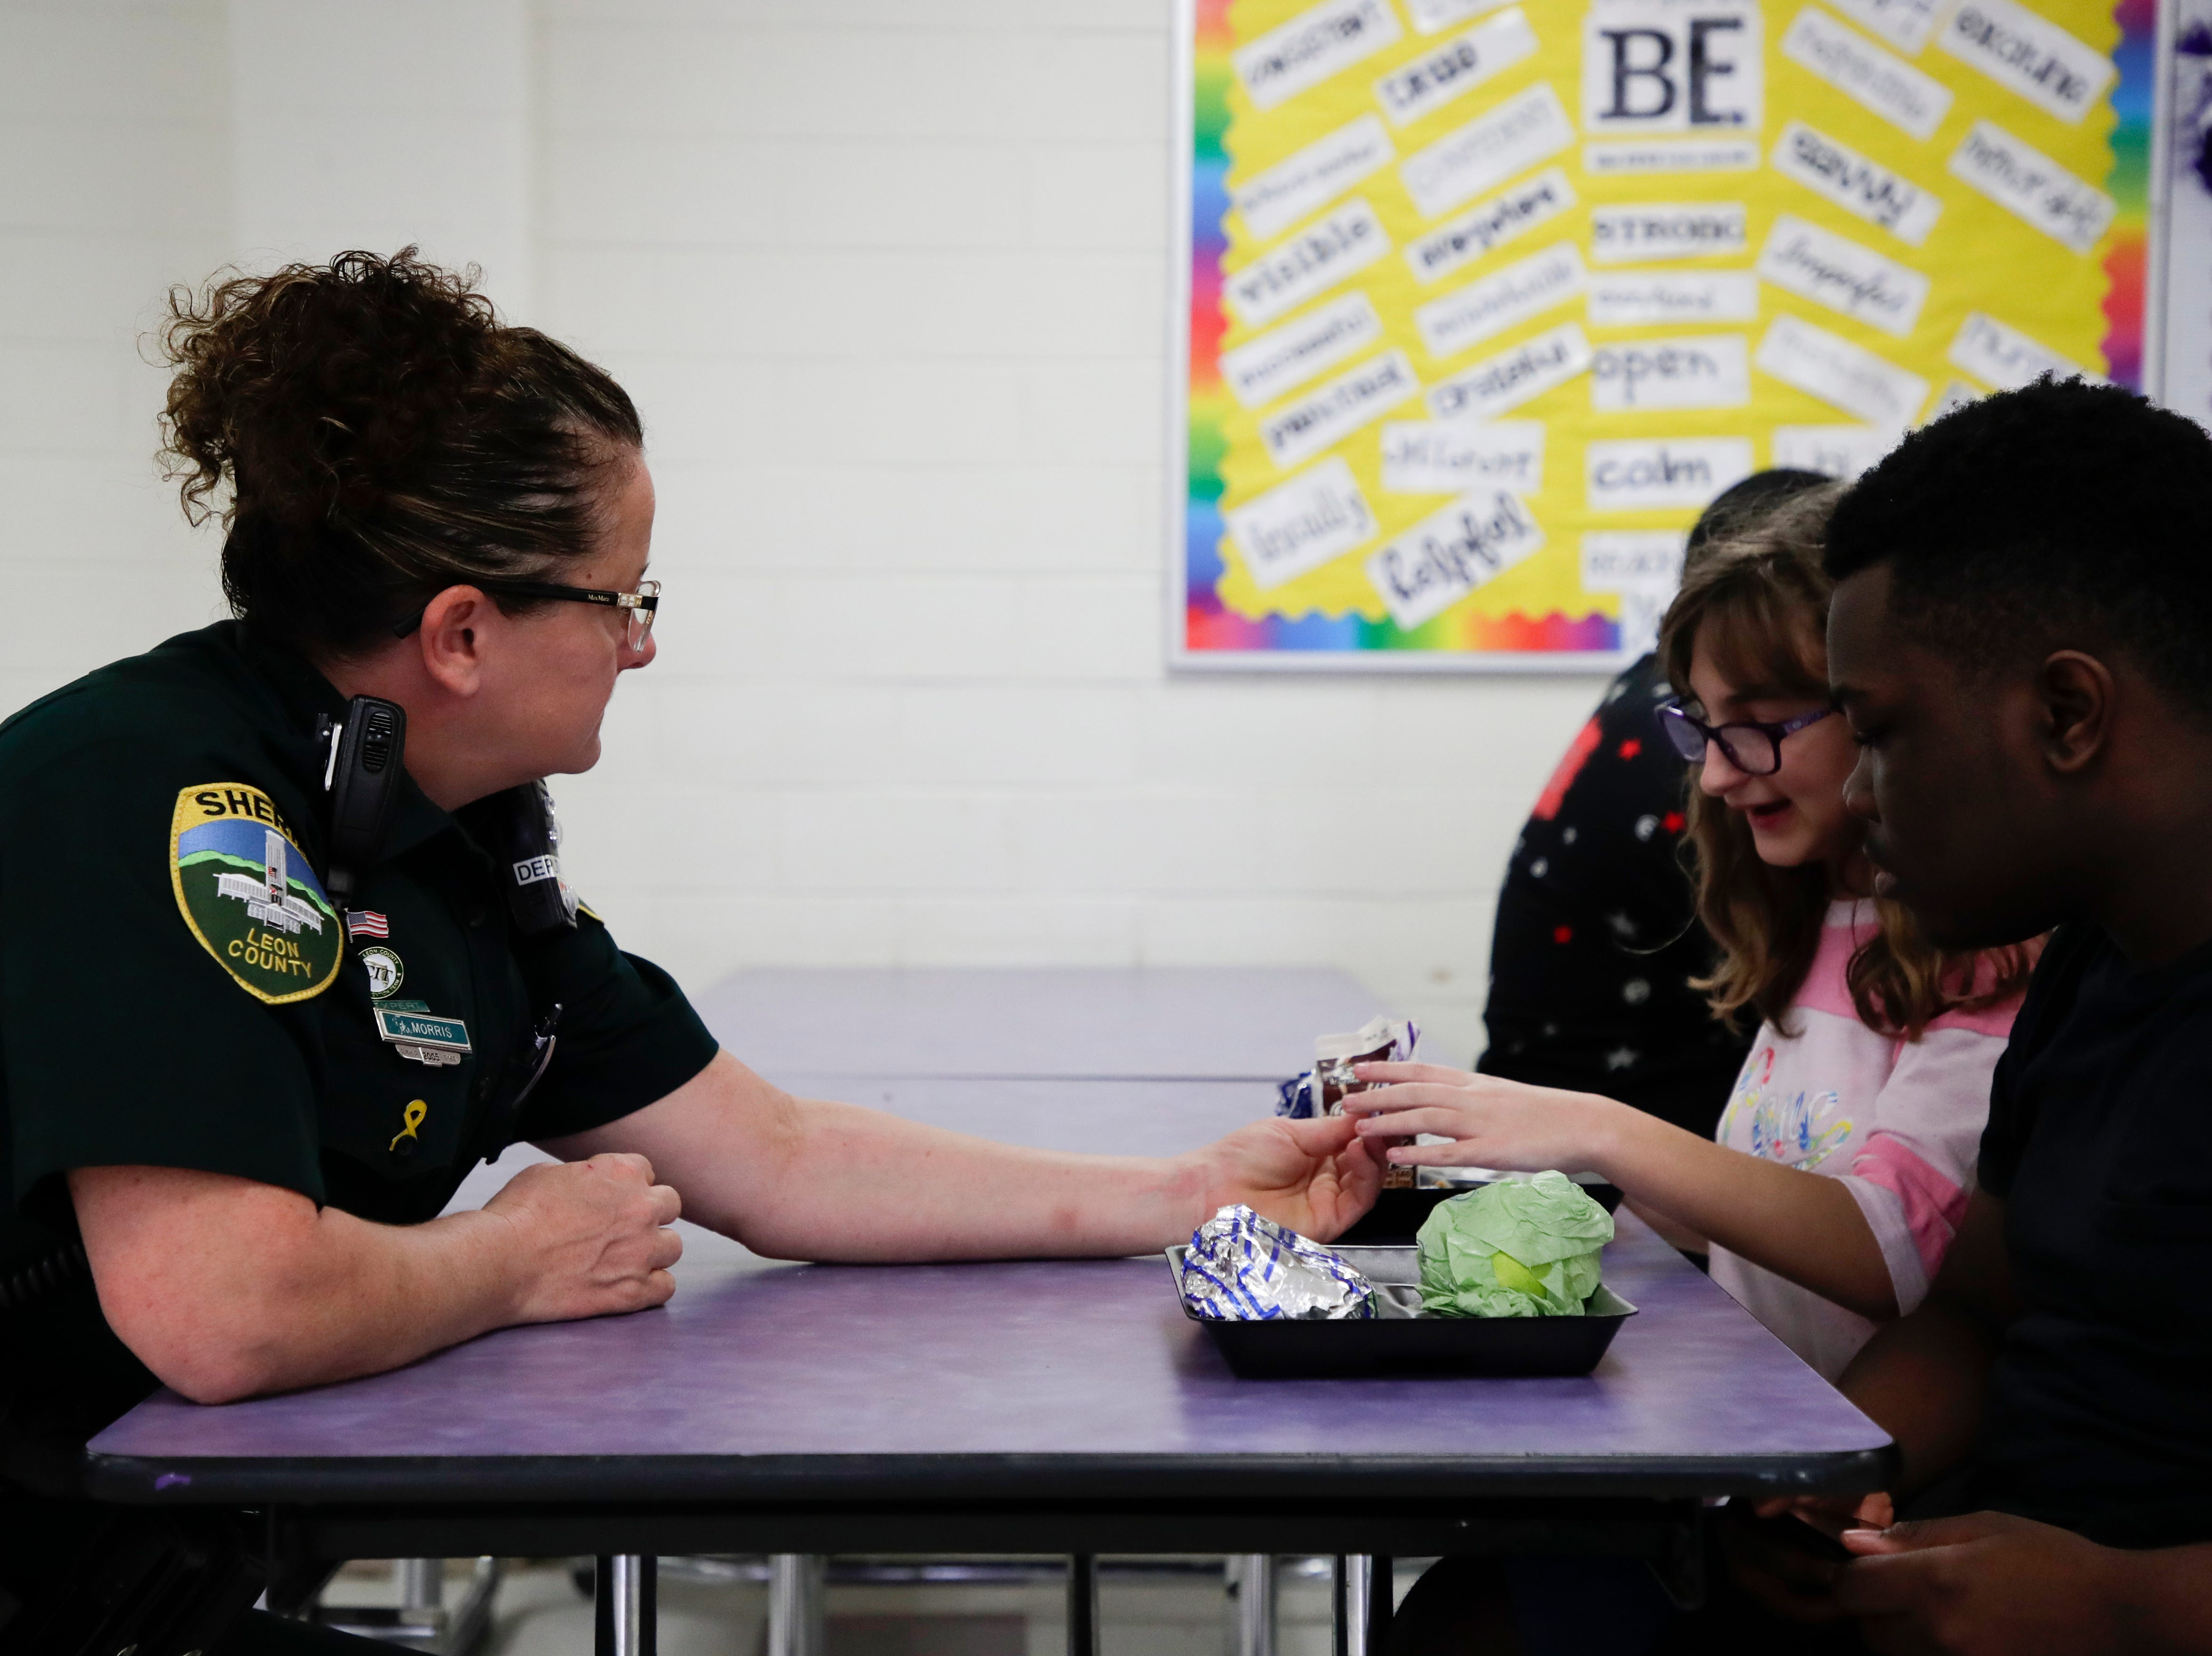 Leon County Sheriff's Department Deputy Jennifer Morris, school resource officer at Cobb Middle School, sits down with seventh grader Lenoris Nixson and his girlfriend and gives them each a piece of candy during lunch Tuesday, Feb. 12, 2019.